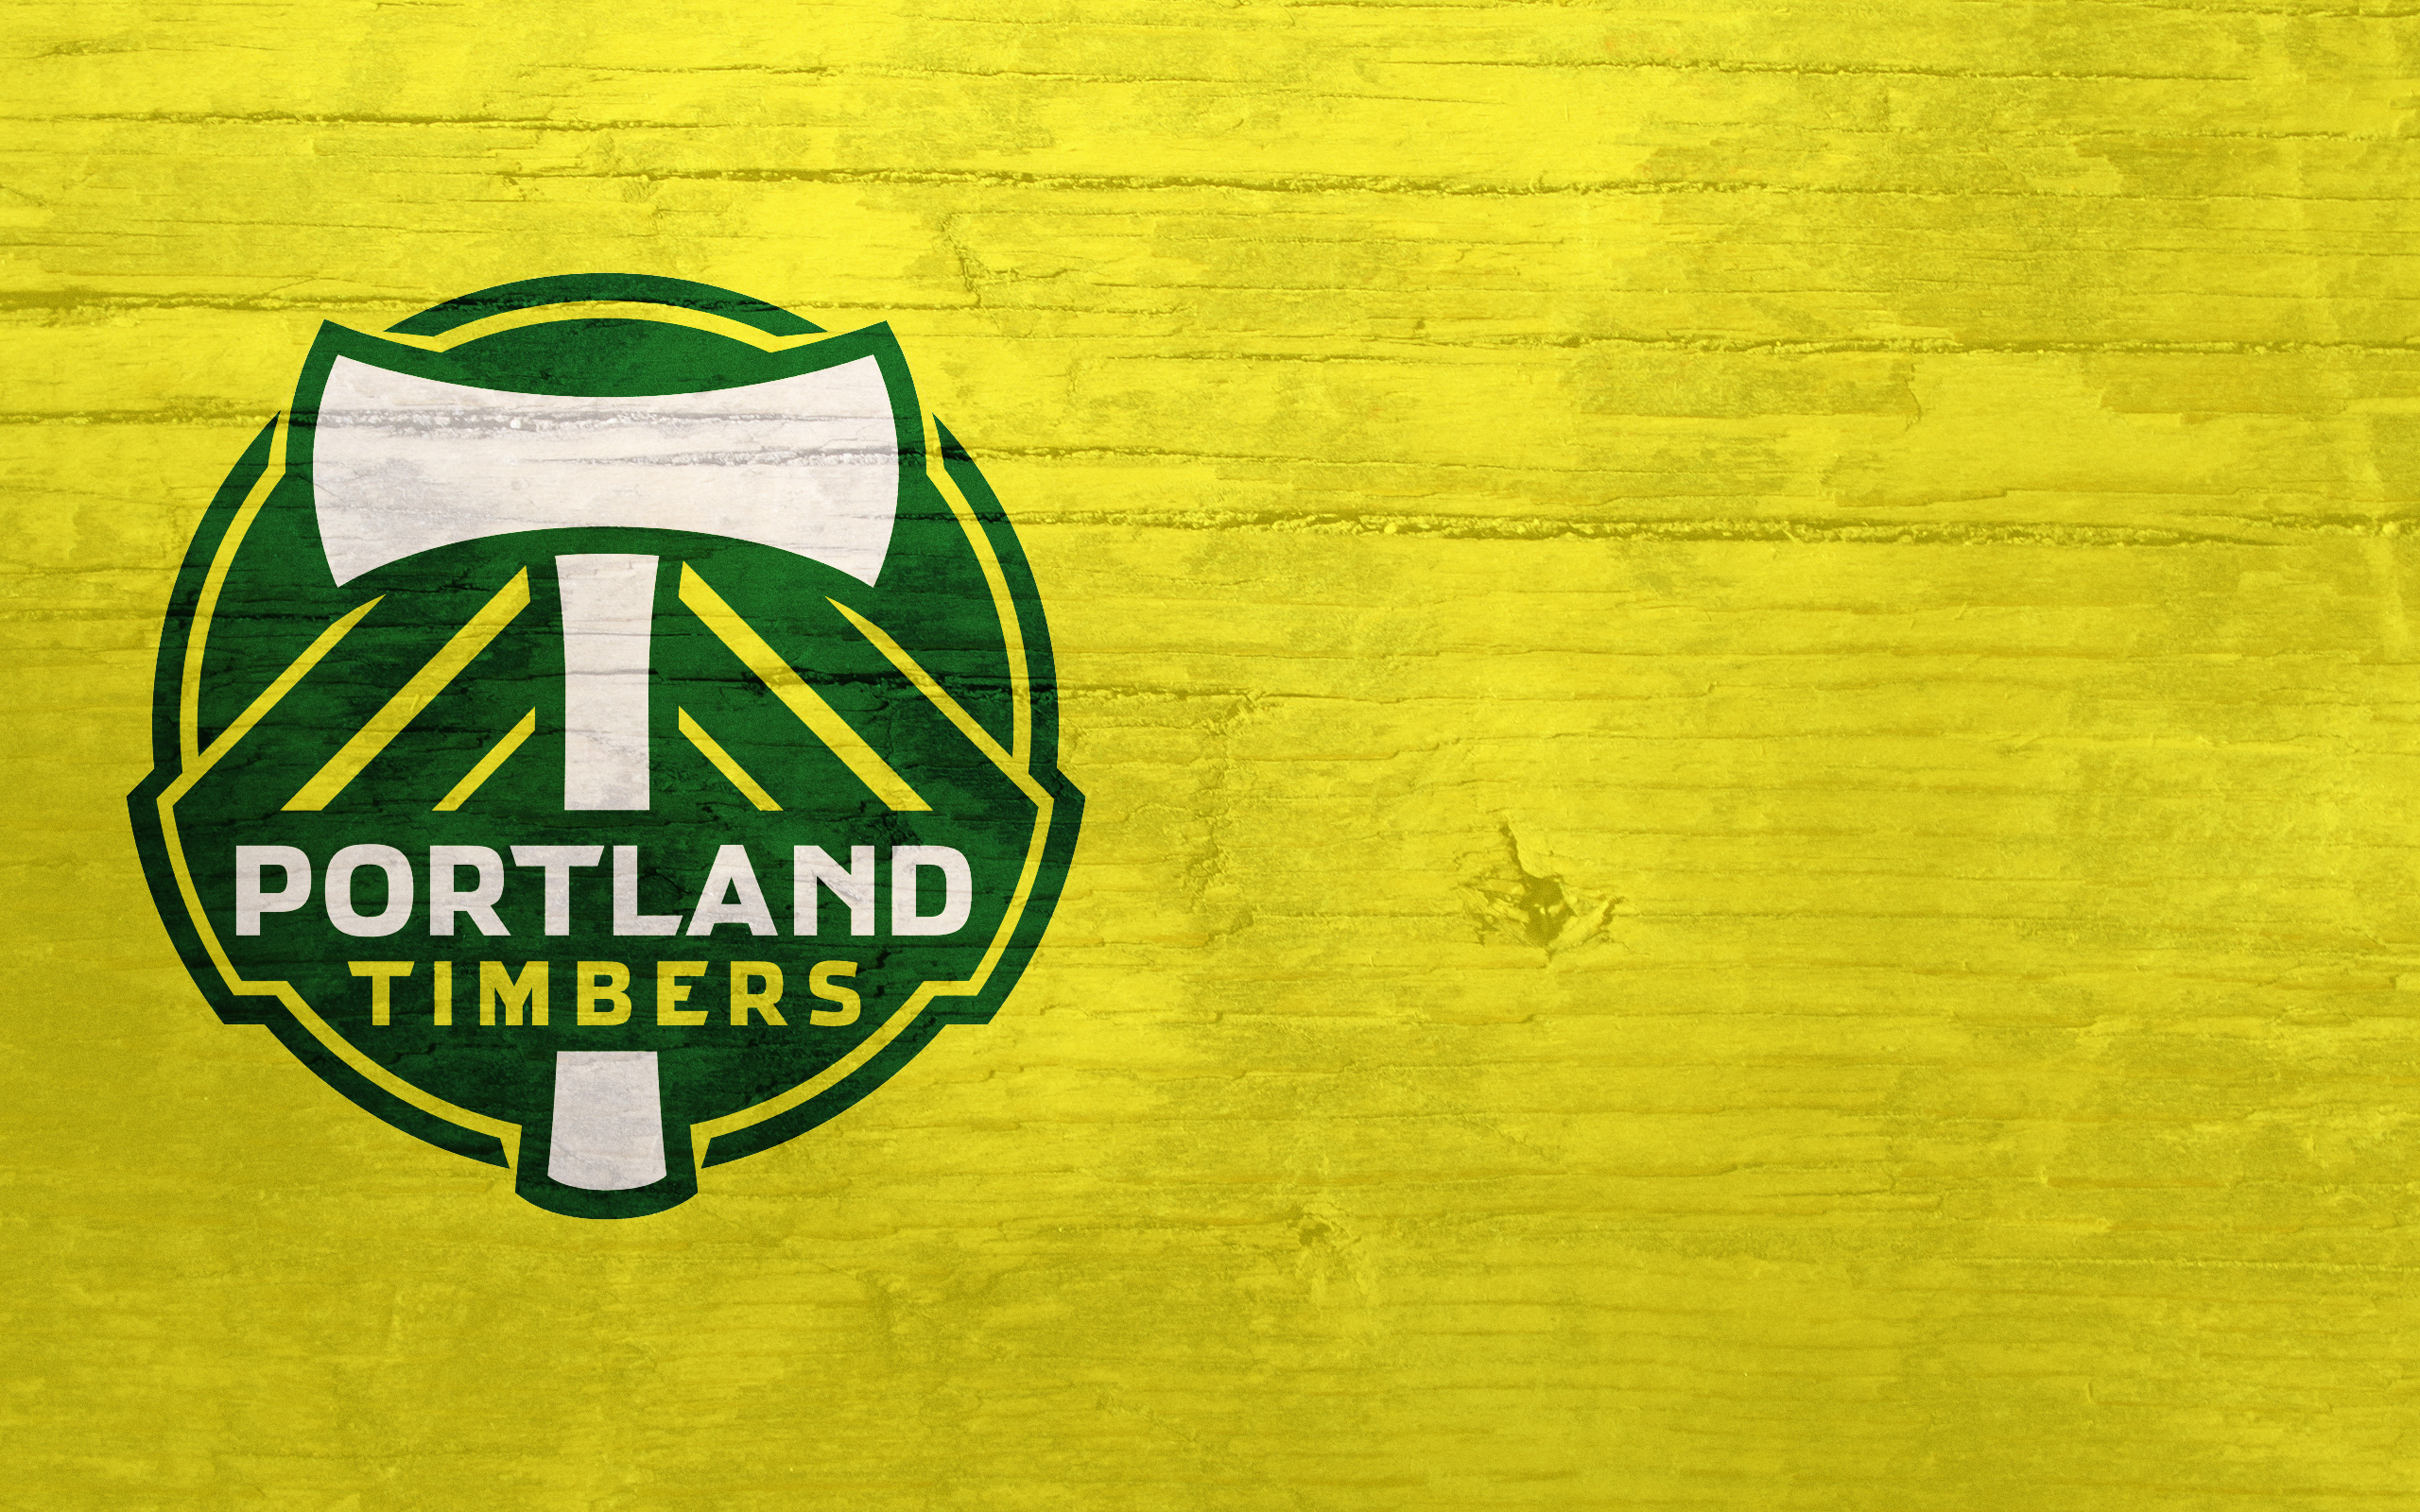 2560x1600 - Portland Timbers Wallpapers 2